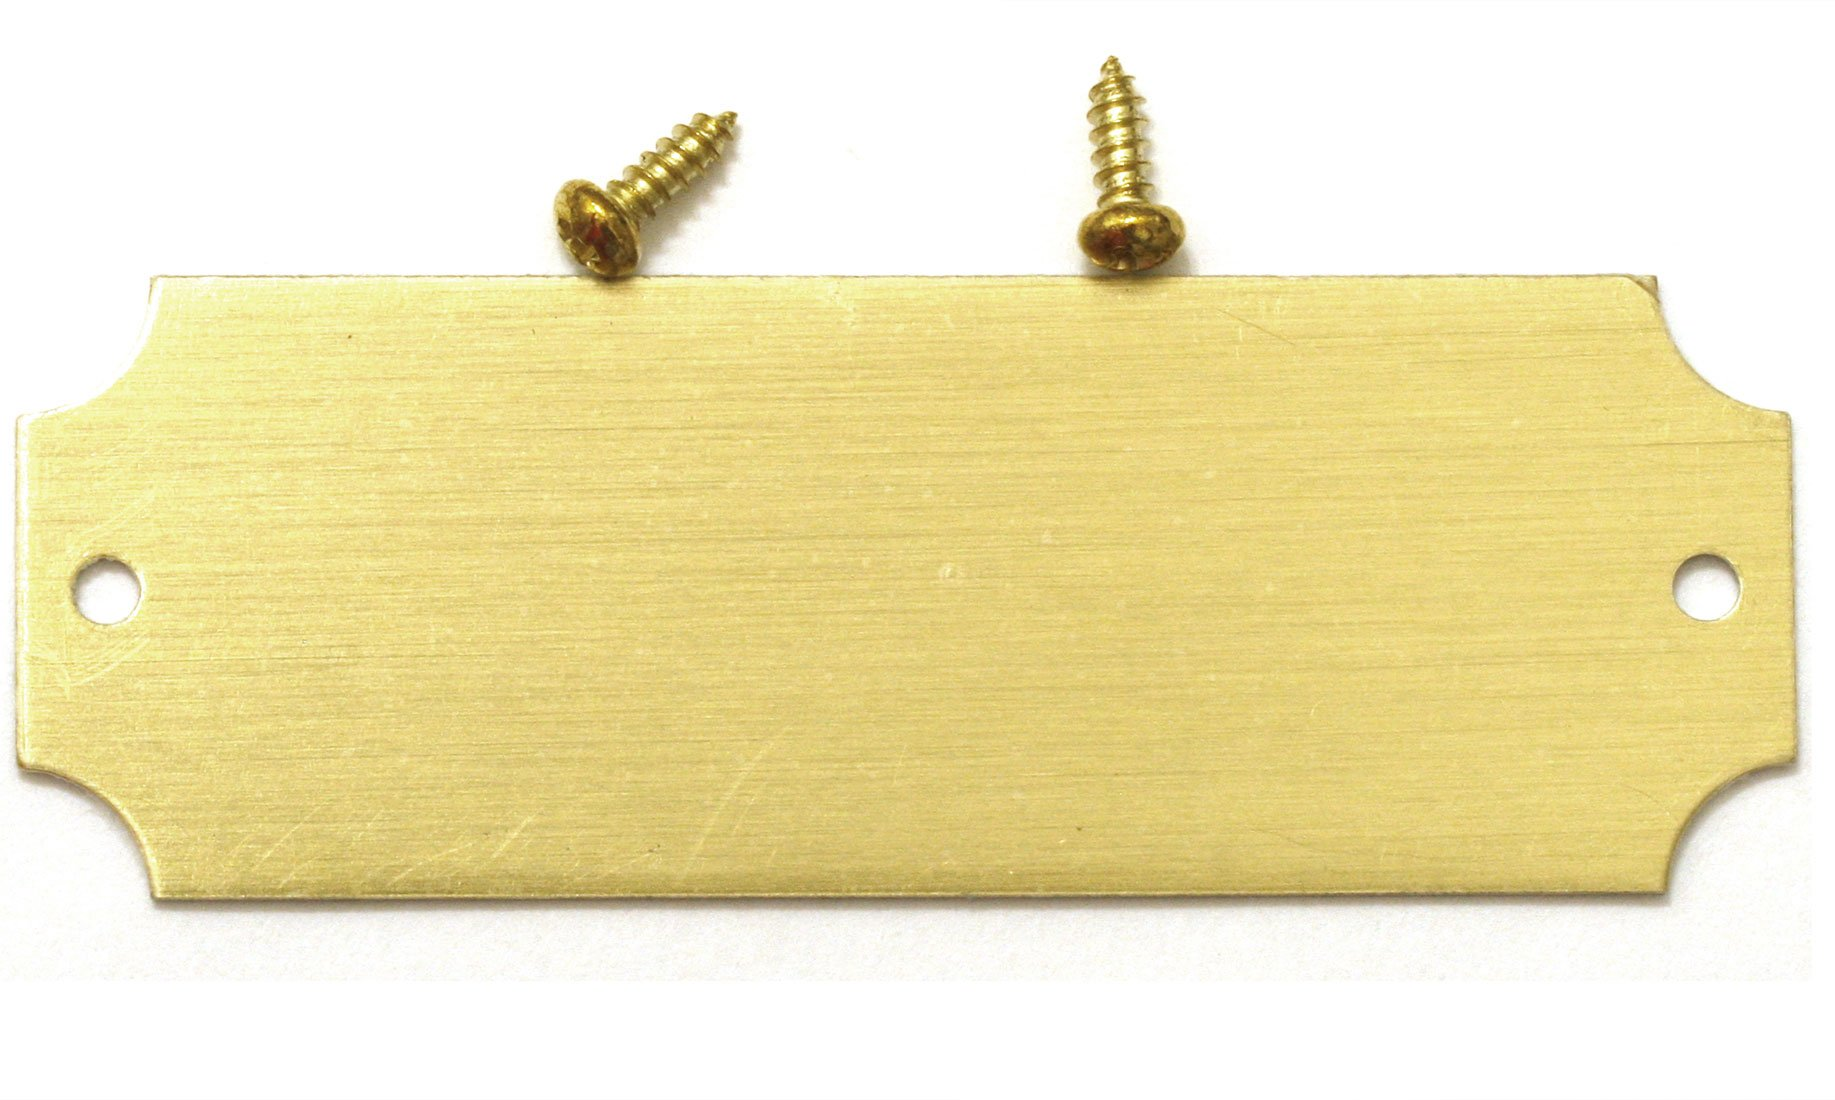 0.875'' H x 2.5'' W, Blank Solid Brass Satin Name Plates, Lacquered Perpetual Plaque Blank Tag, with Screws, Made in USA (50)